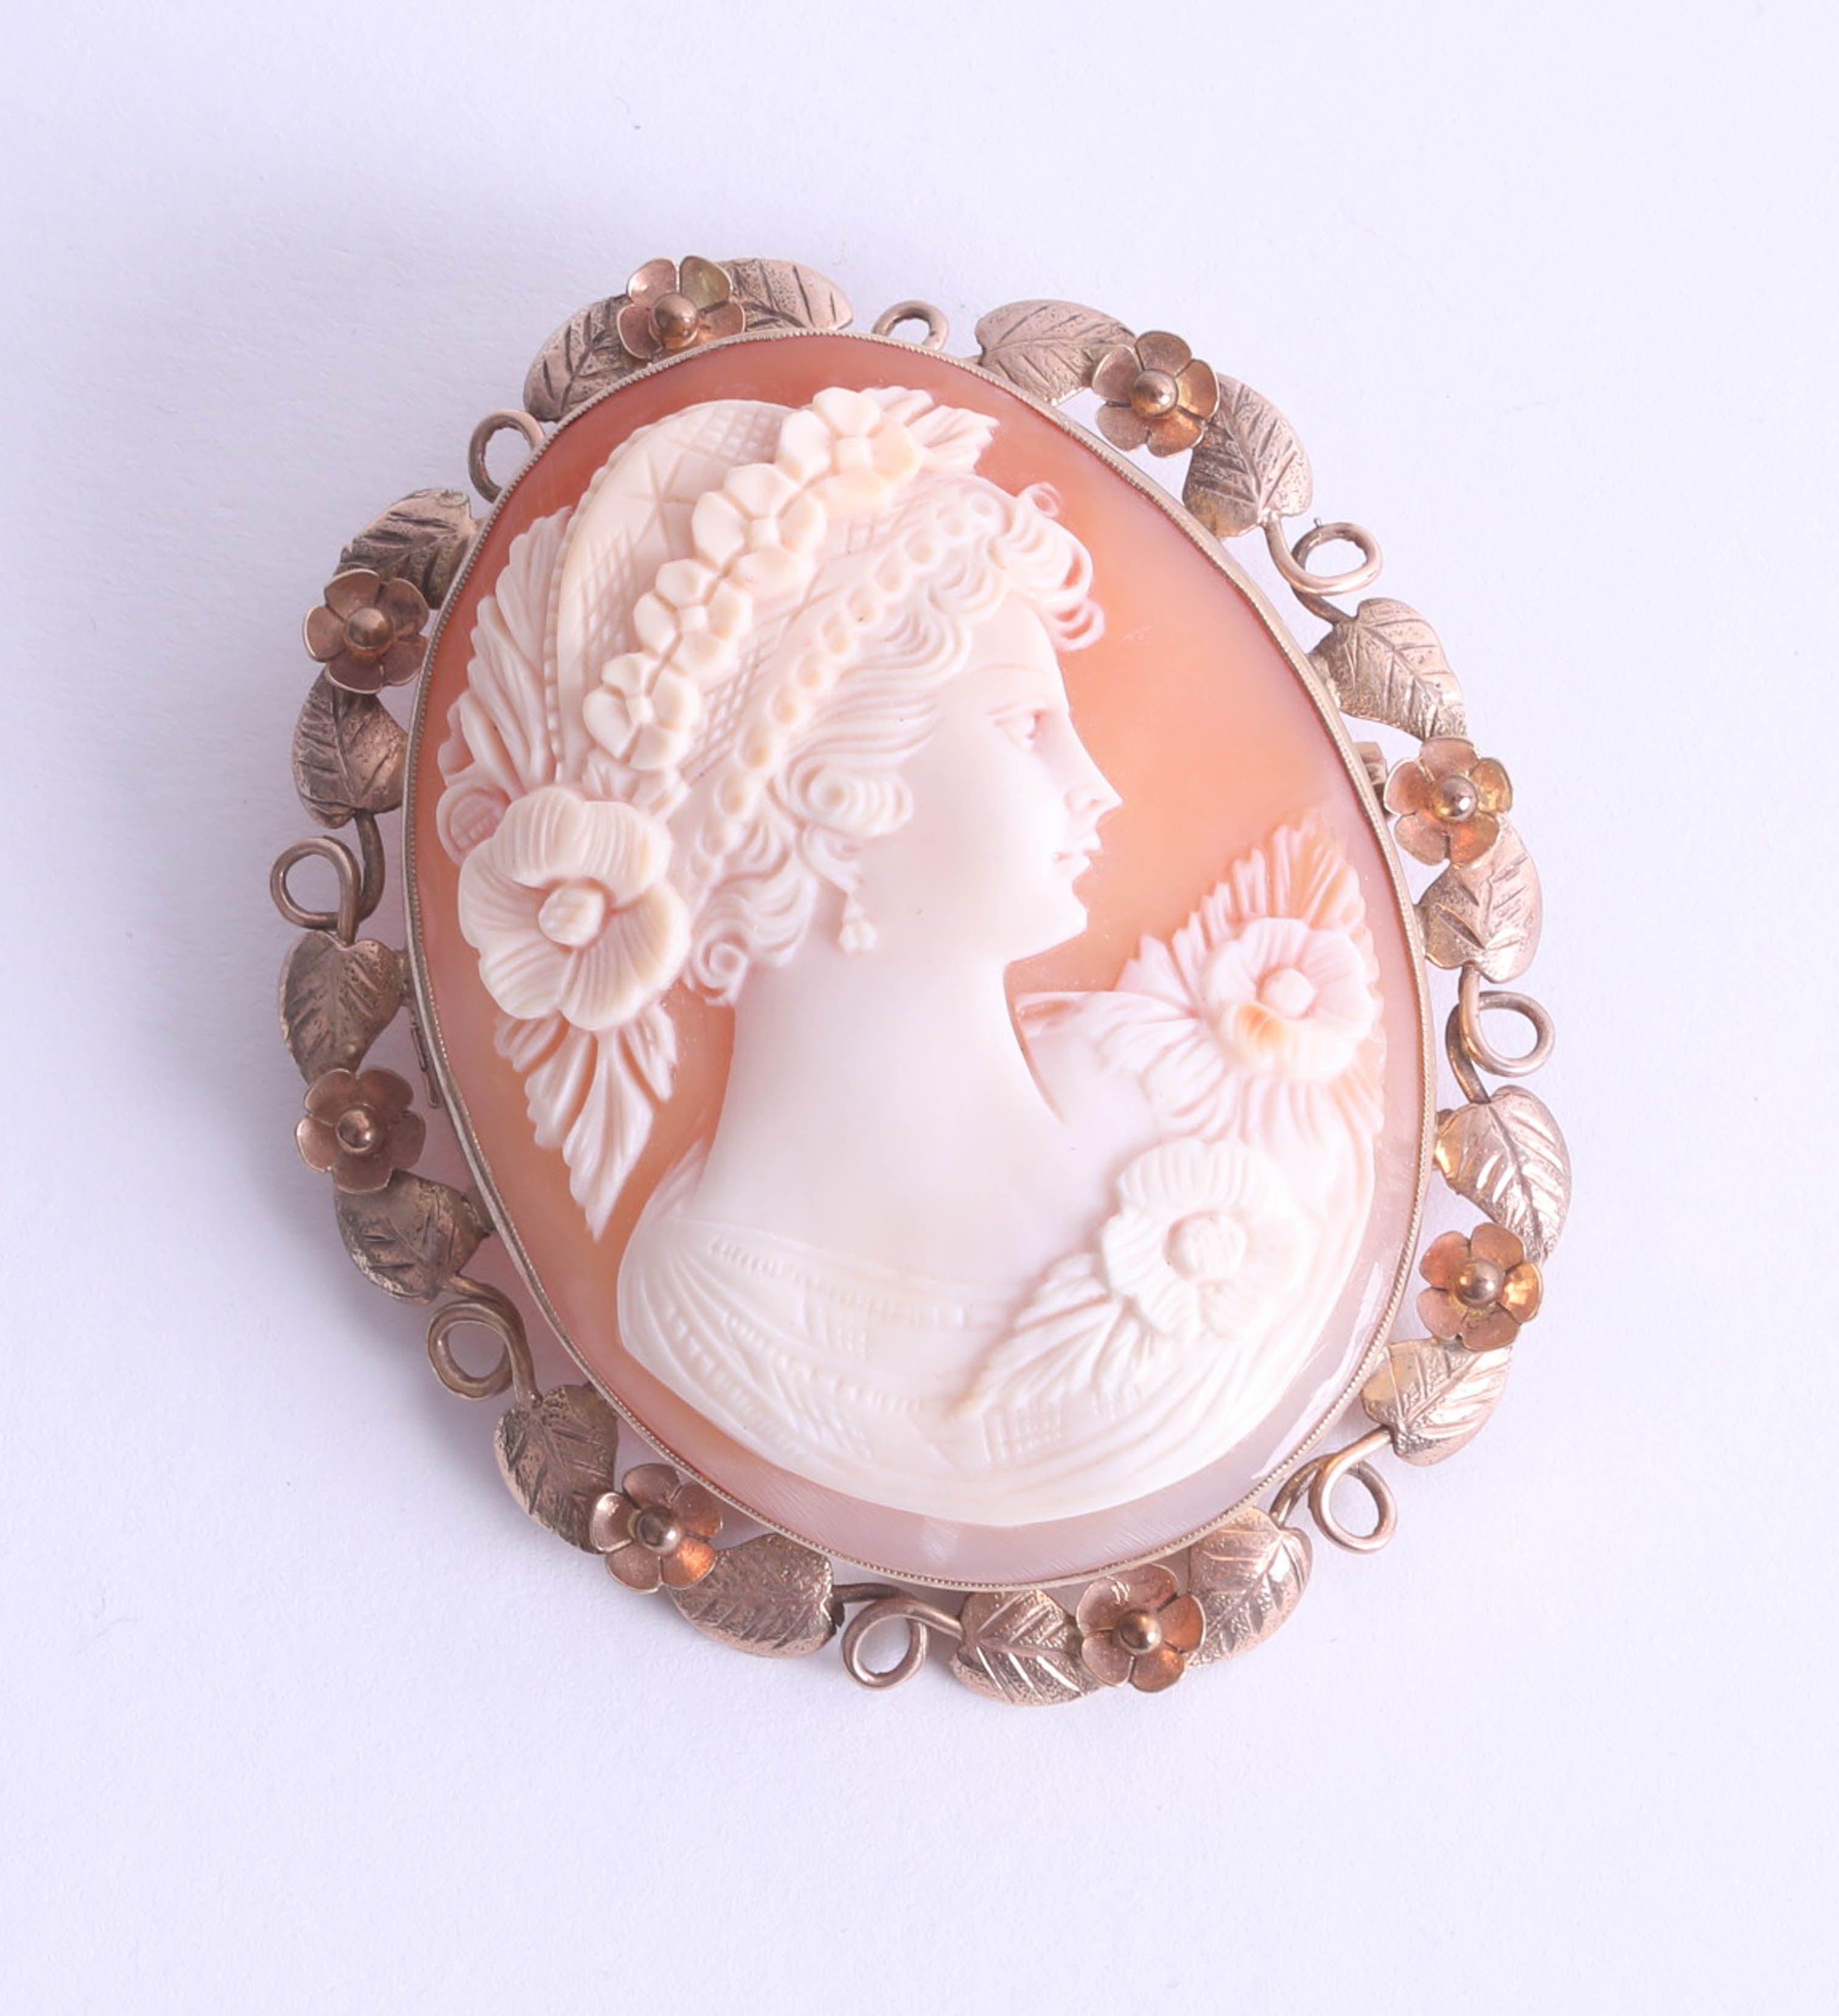 Lot 028 - A large 9ct gold oval cameo brooch, depicting a period lady with floral hair decoration, approx.